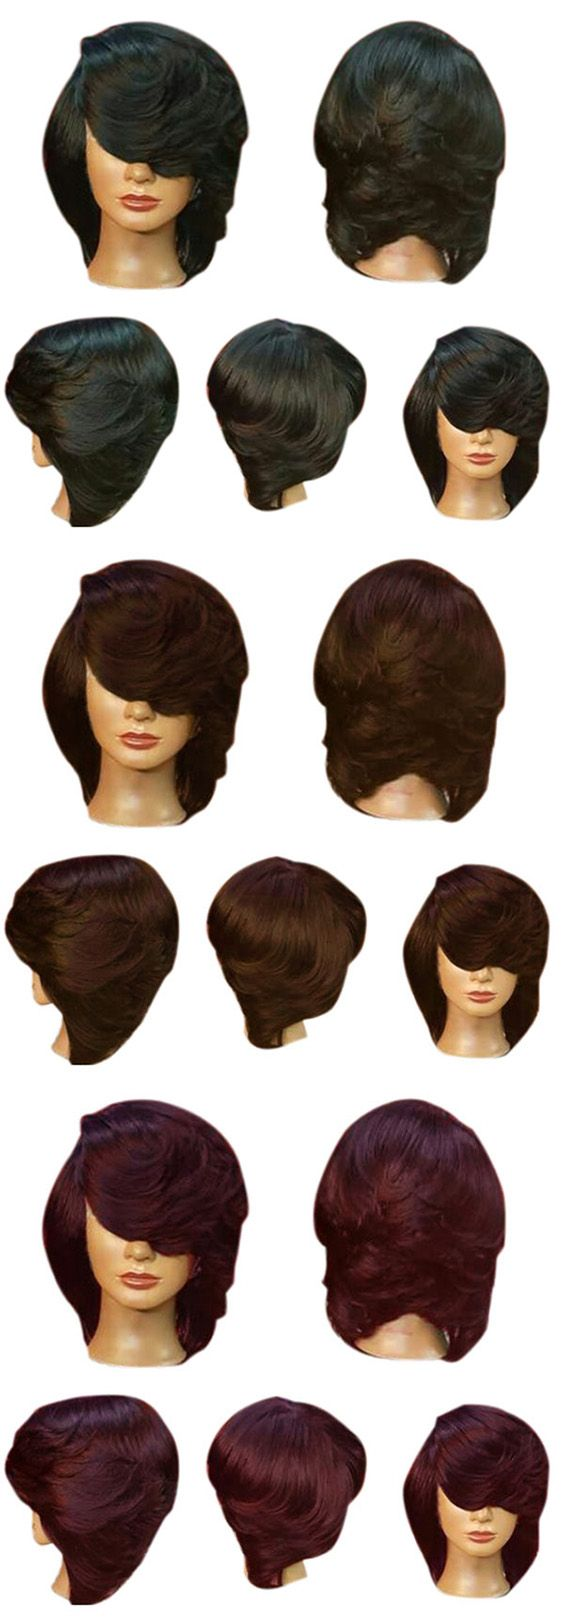 50% OFF Synthetic Wigs